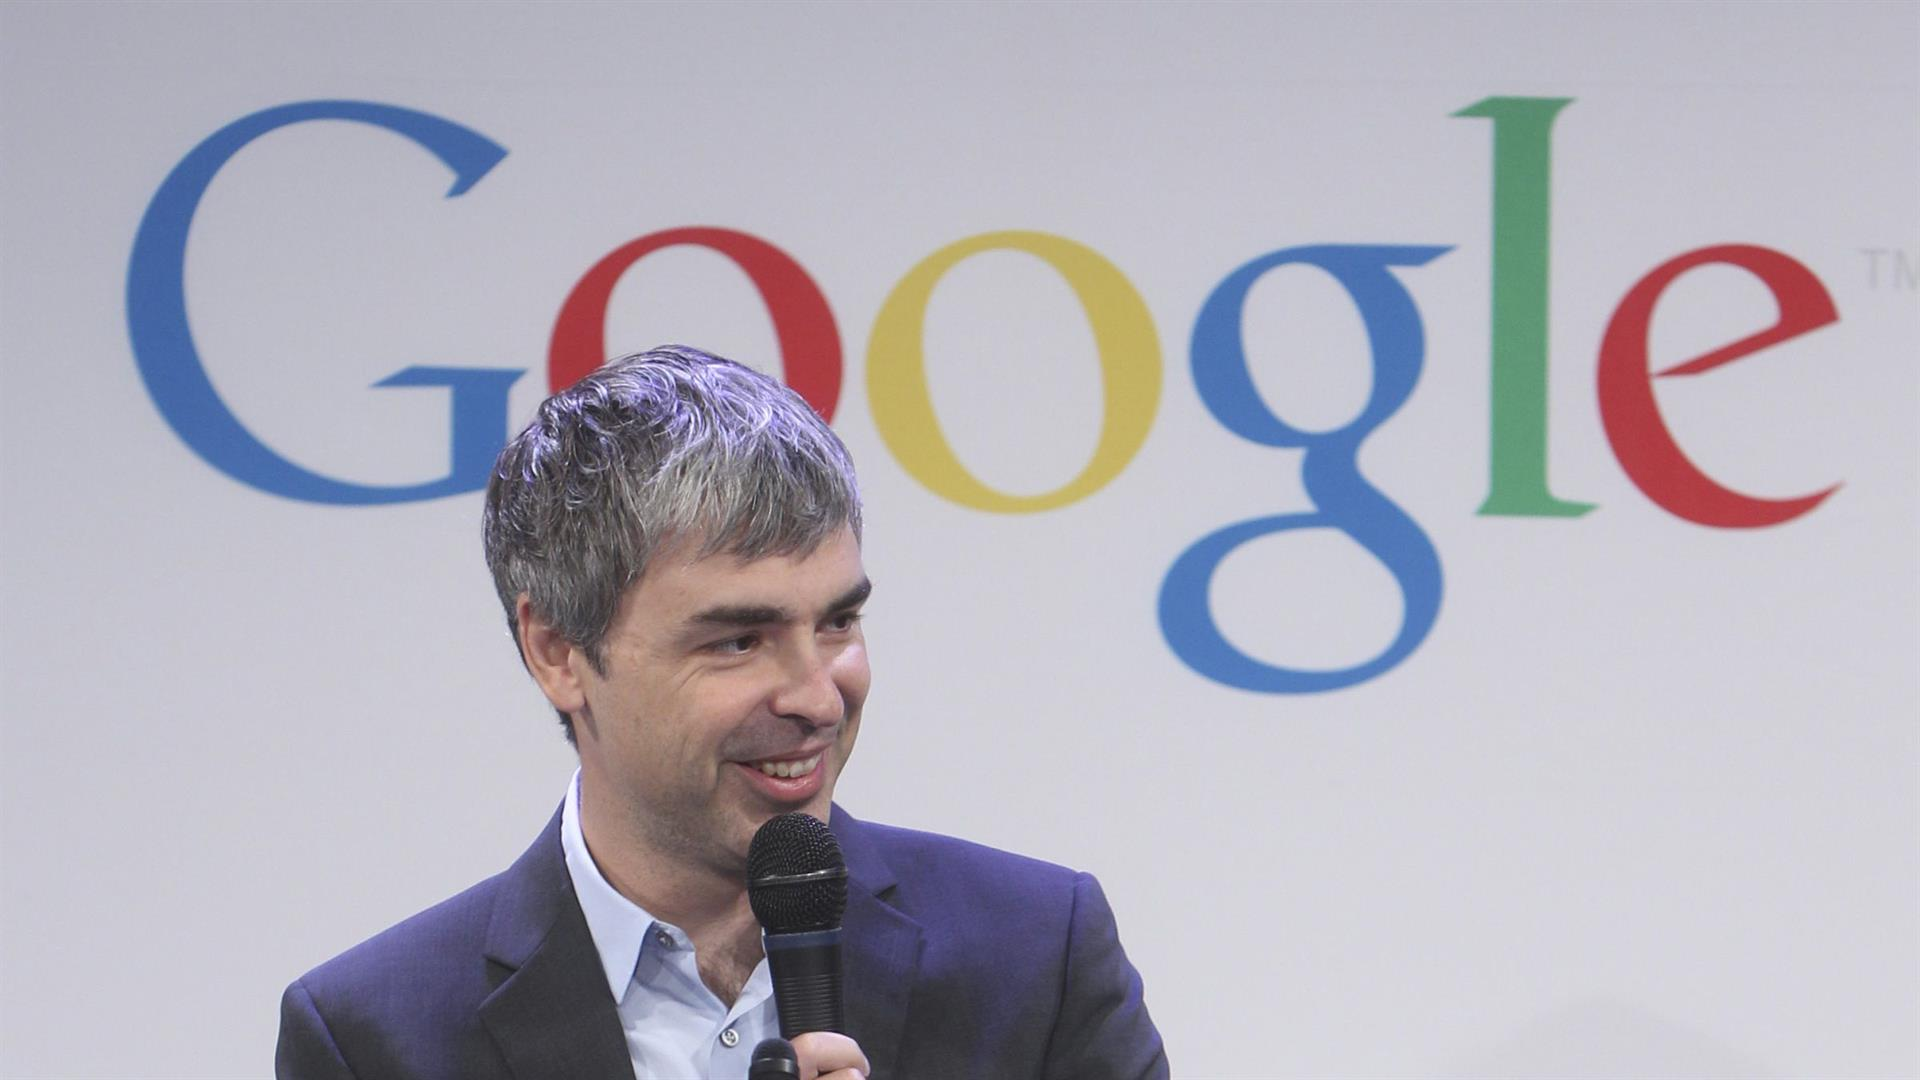 Larry Page Hd